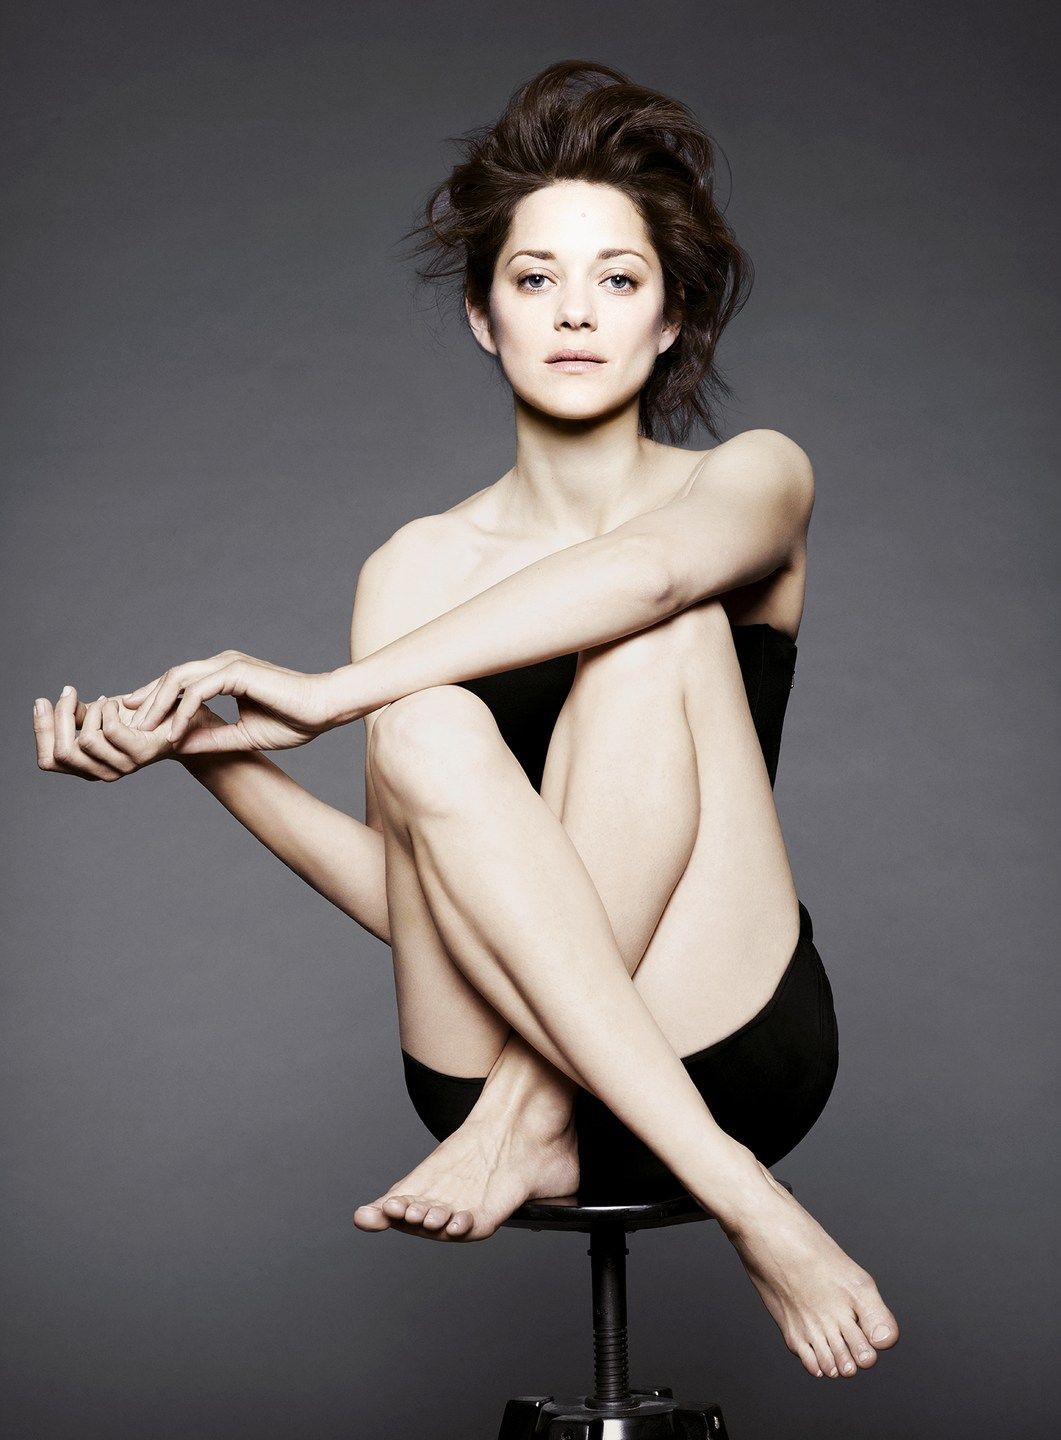 Marion Cotillard, photographed by Jan Welters for Madame Figaro, Aug 2013.